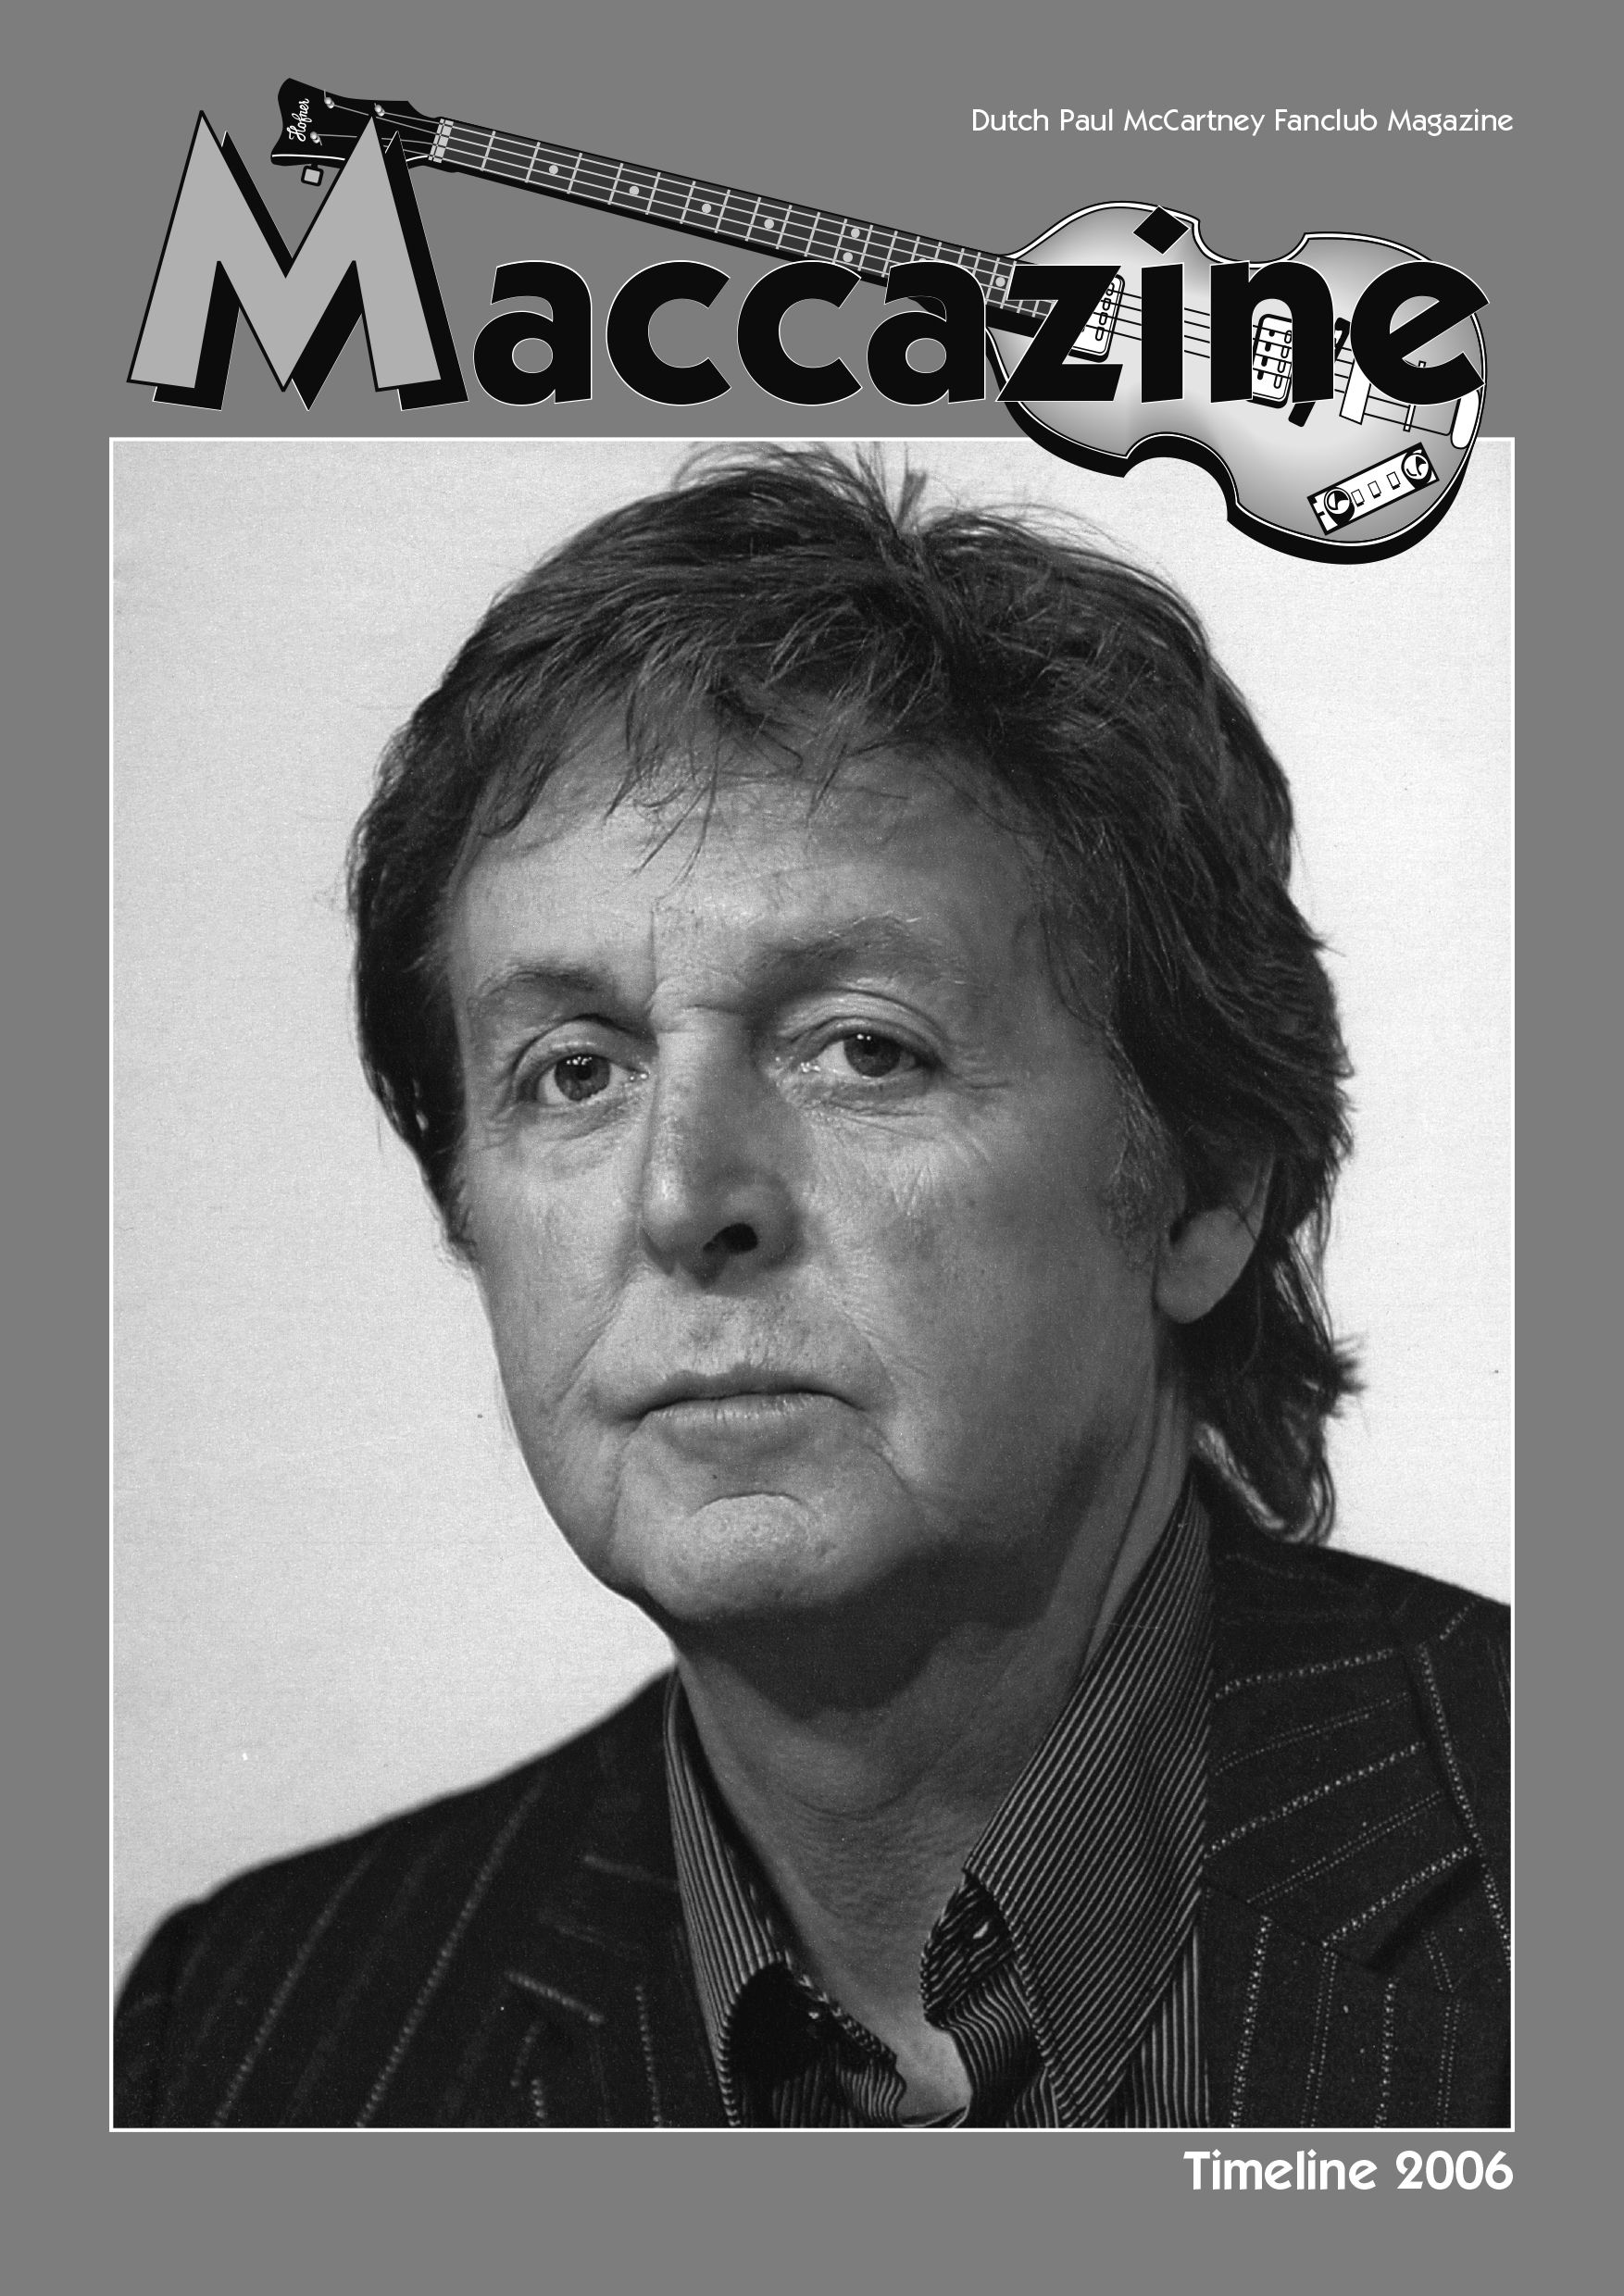 Maccazine Timeline 2006 News Special Volume 35 Number 1 2007 Paul MccartneyTimeline